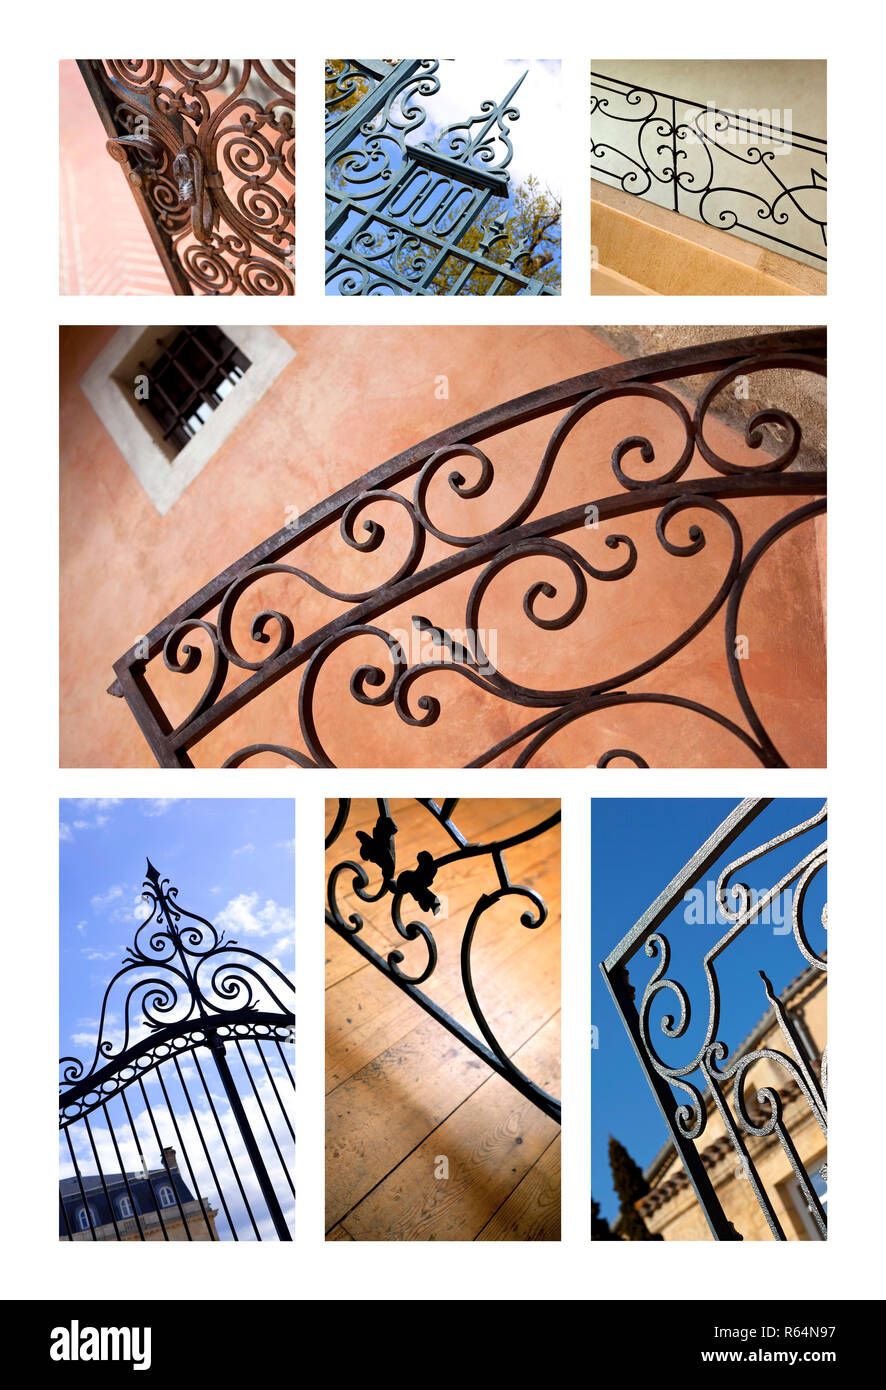 Gates and handrails Stock Photo